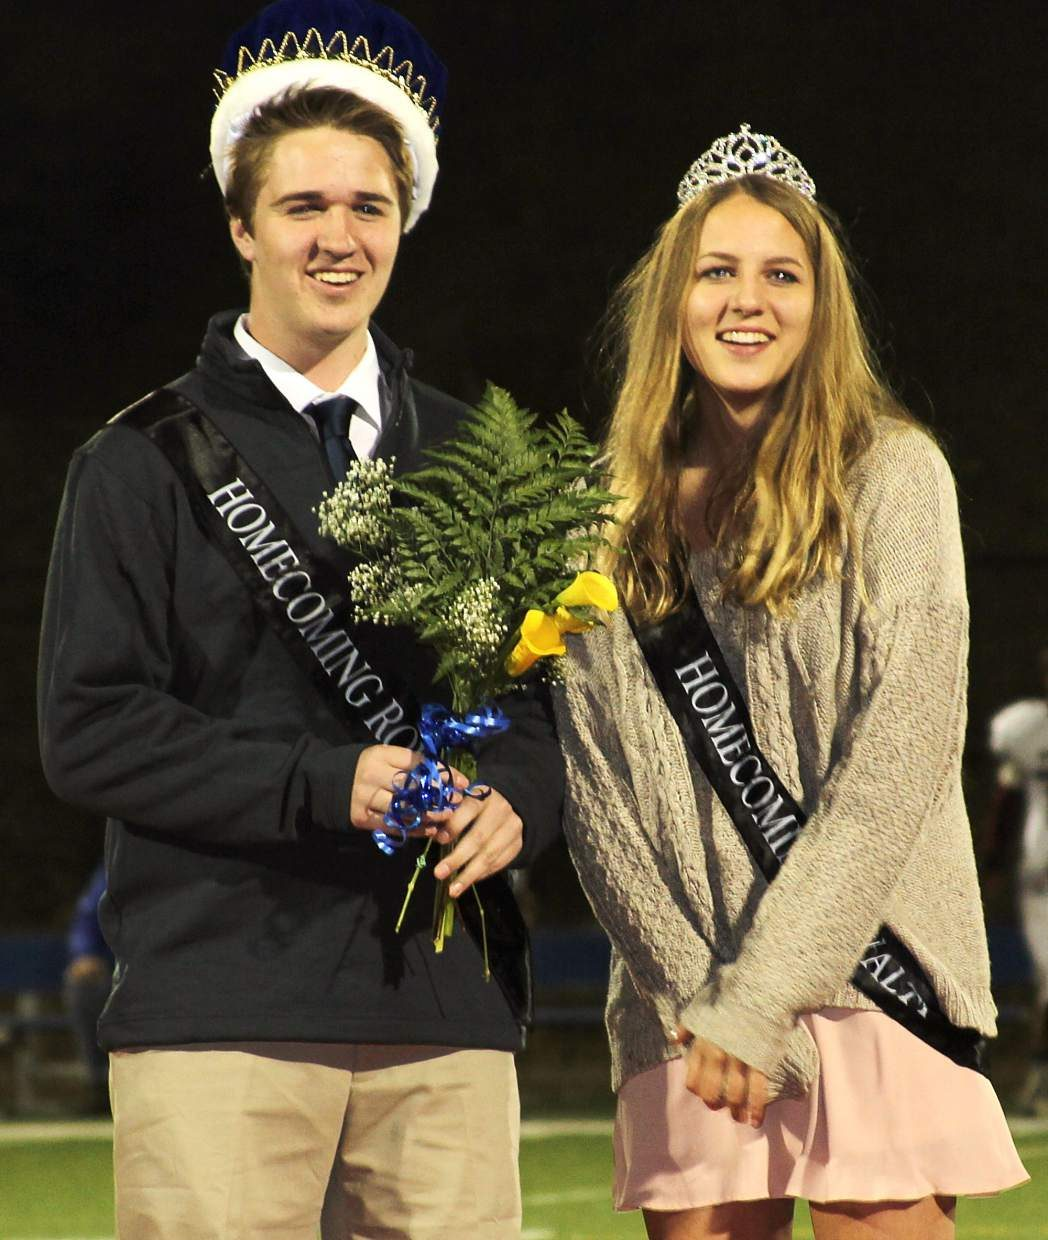 STHS seniors Charlie Filce (left) and Maia Smith (right) were elected homecoming king and queen Friday.